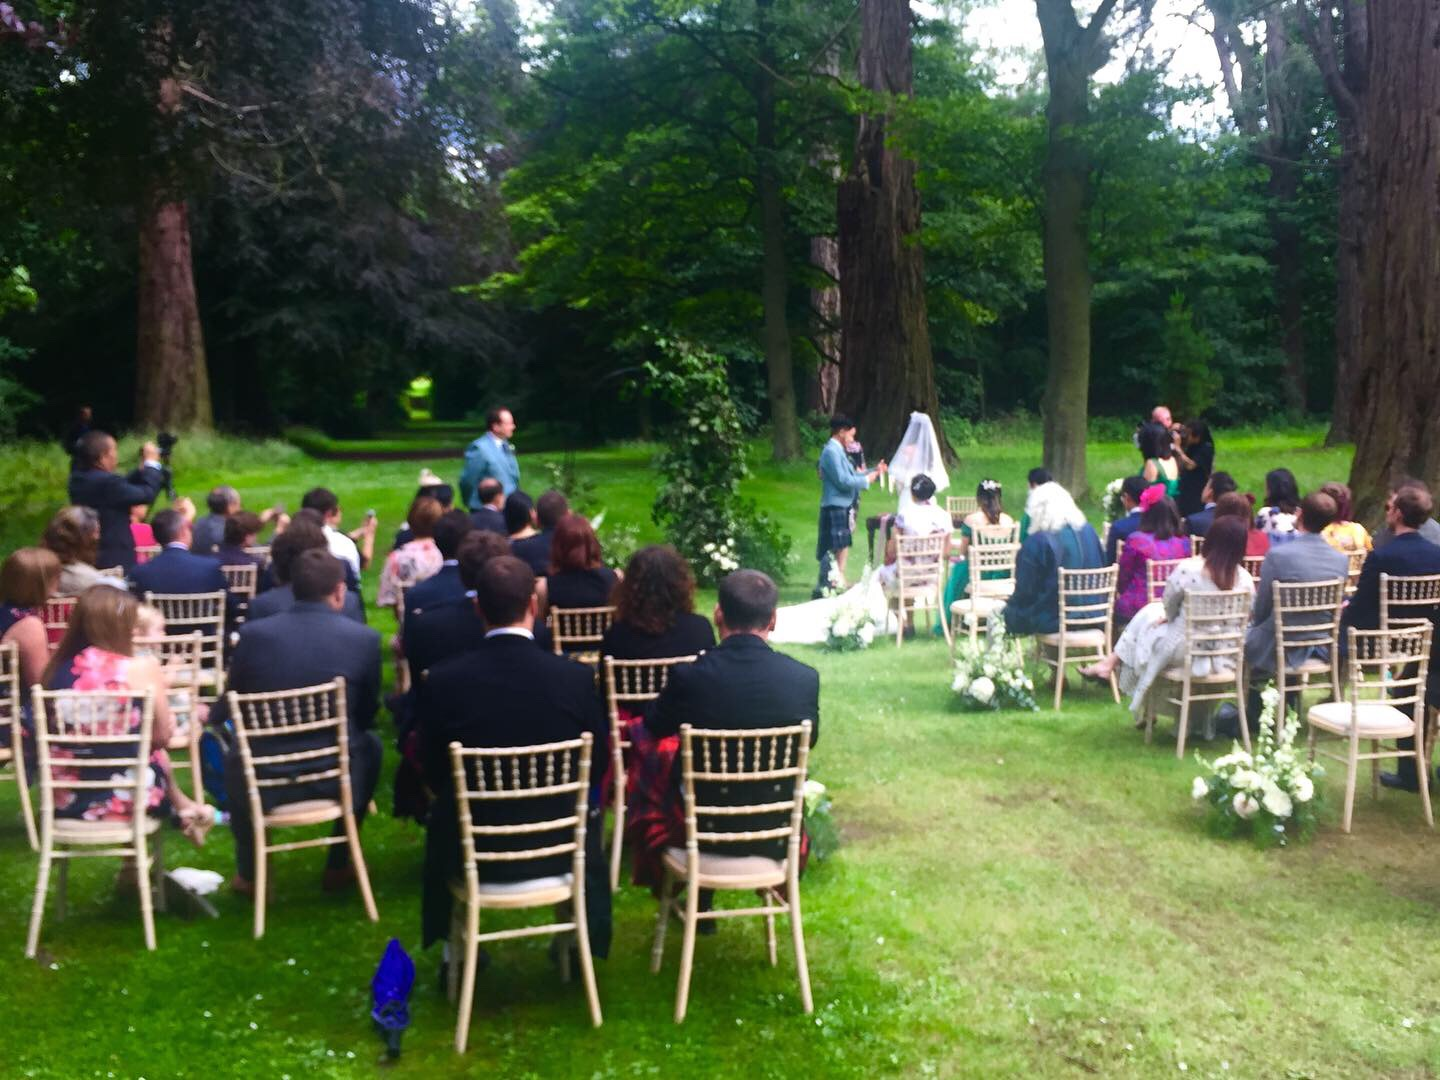 An outdoor wedding at Oxenfoord Castle Pathhead. The couple from Hong K,ong, Wing Biu Chan and Ka Yan   Lo   made a brave decision but got away with it. Lovely setting.